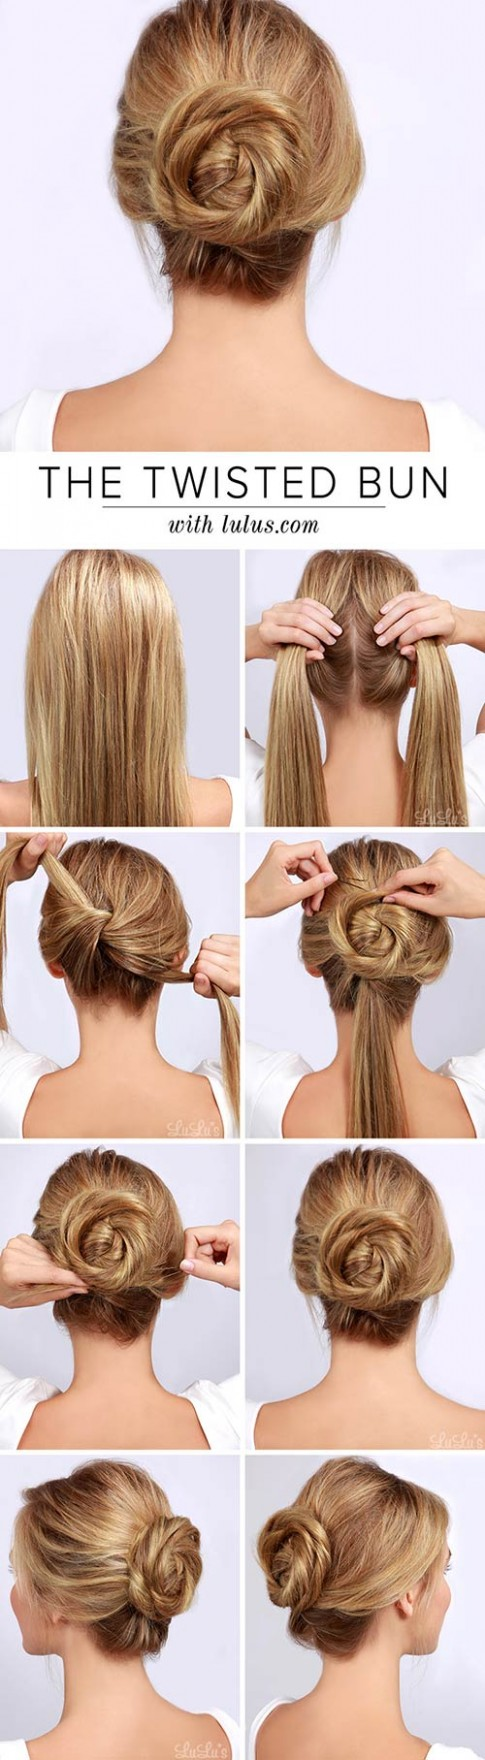 8 Awesome Hairstyles For Girls With Long Hair Hairstyles For Super Long Hair